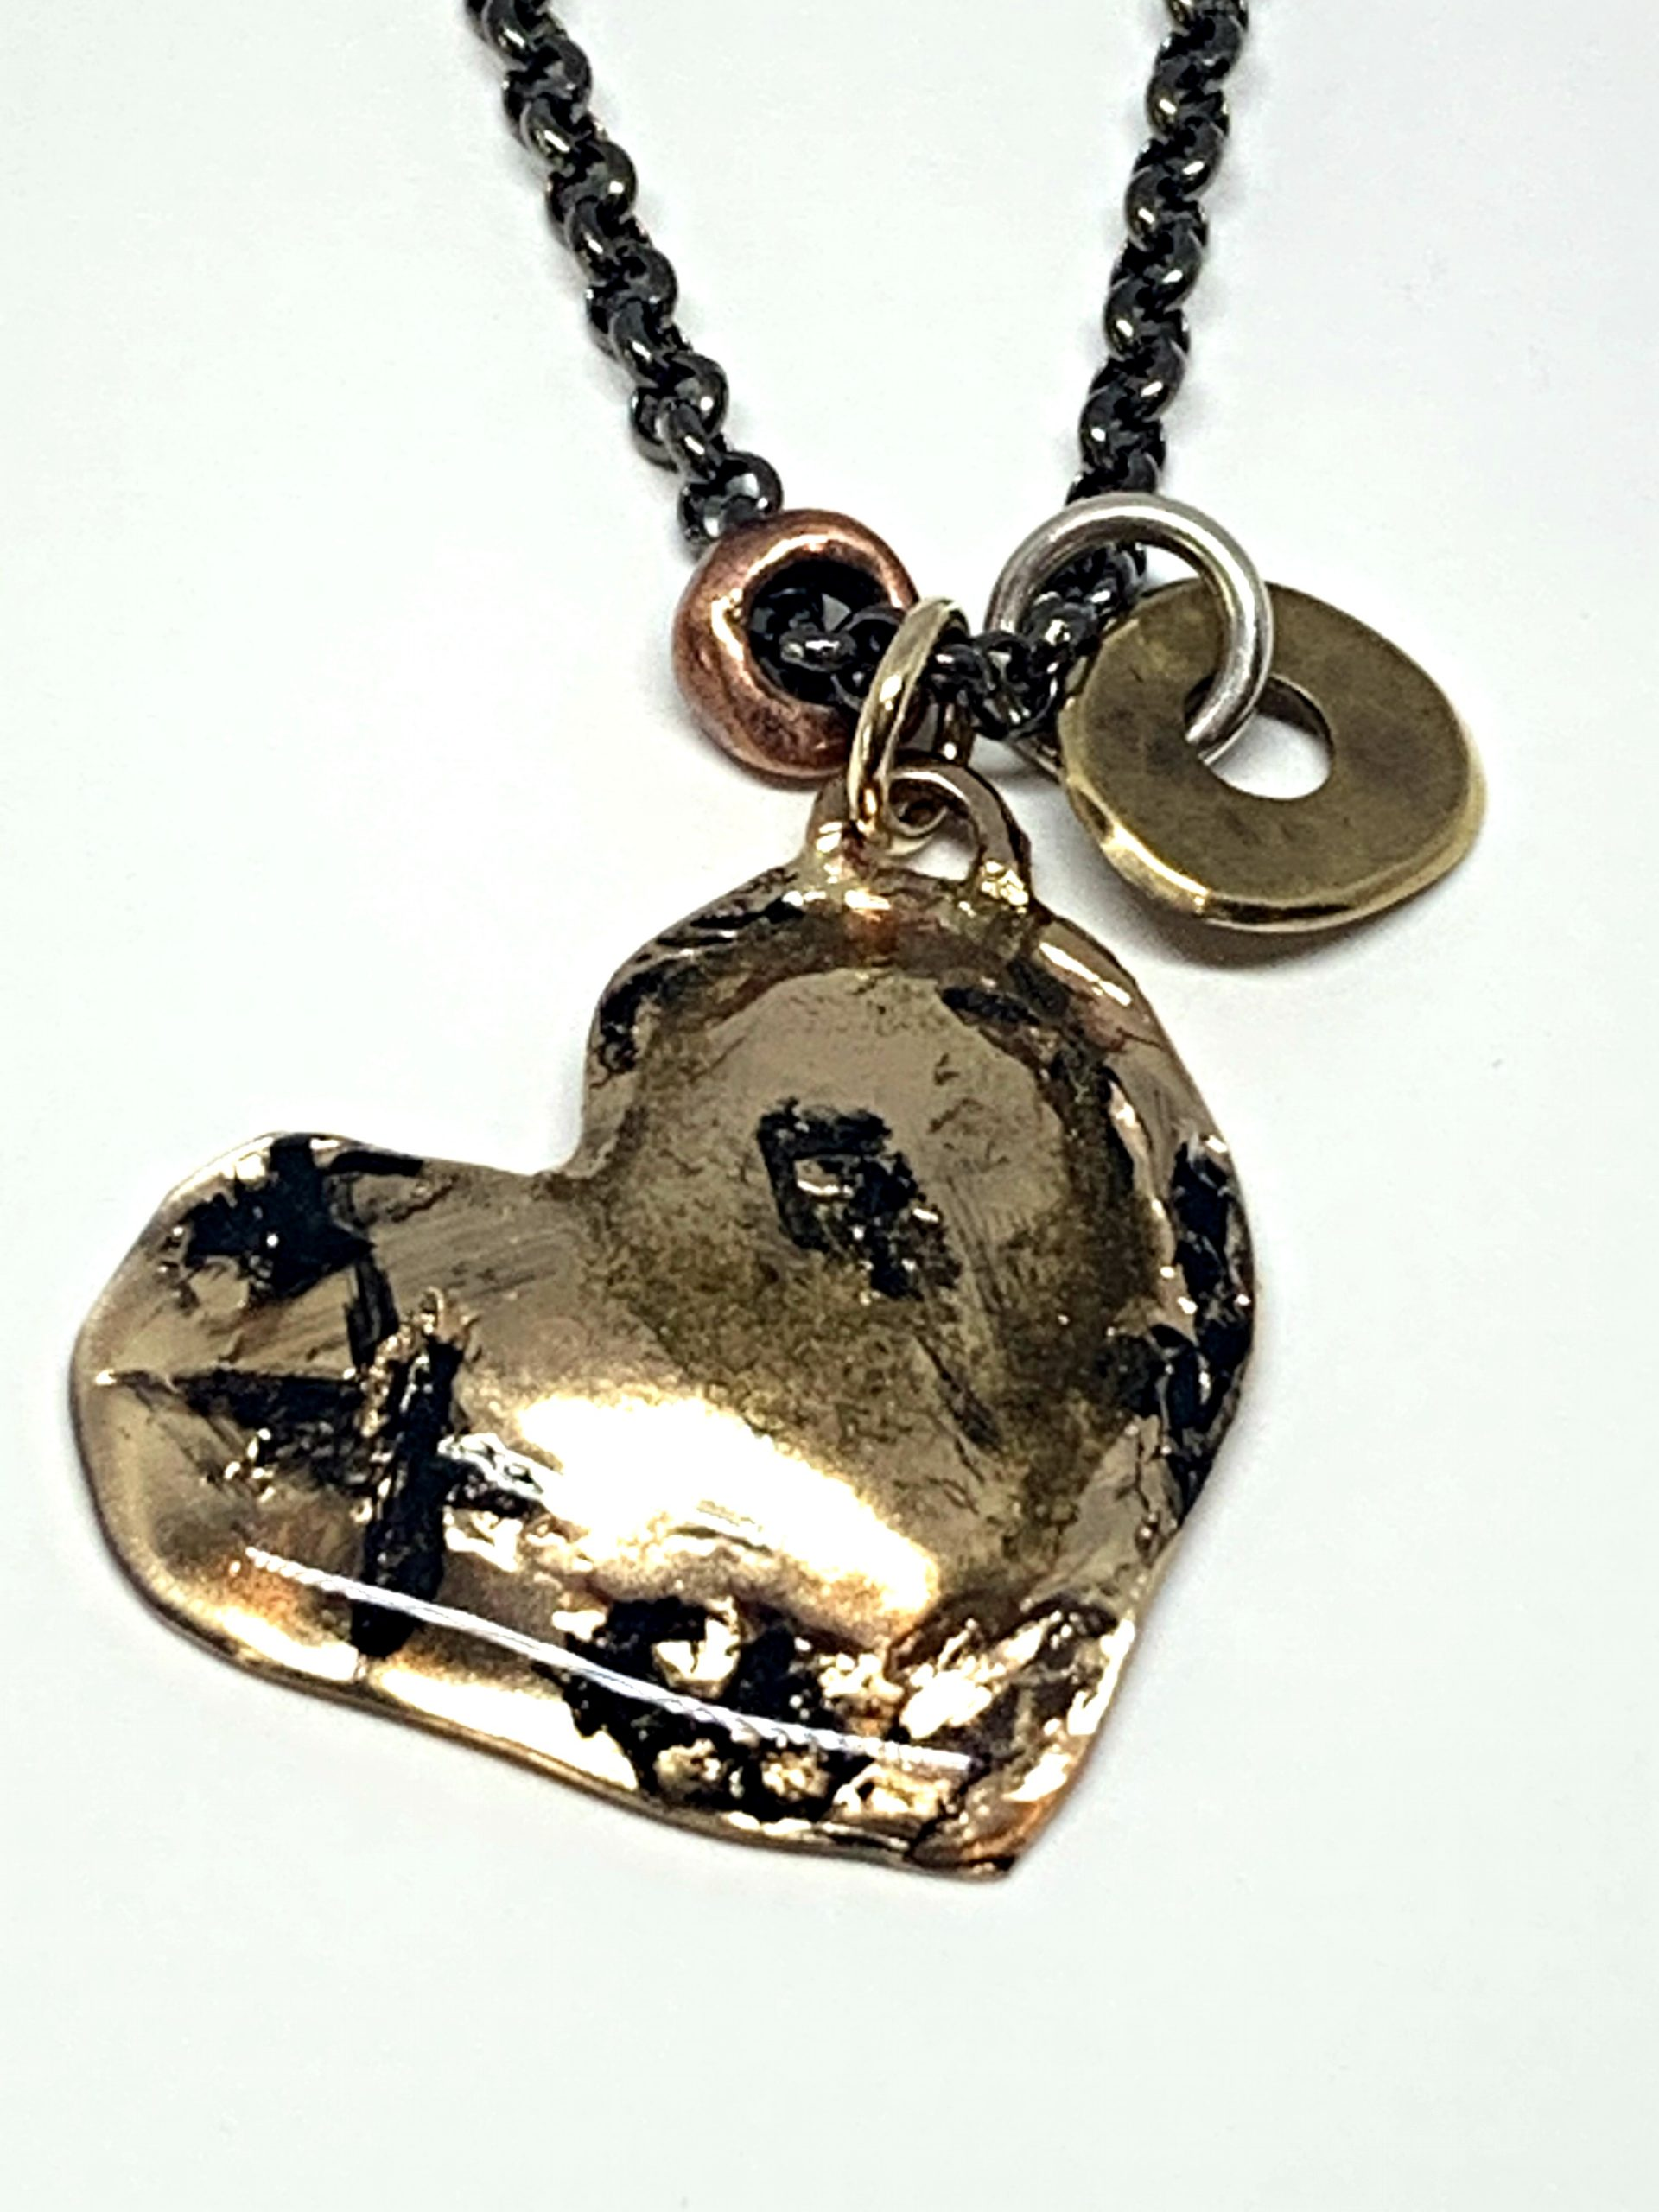 Modern Art Heart Necklace by Karyn Chopik | Effusion Art Gallery + Cast Glass Studio, Invermere BC